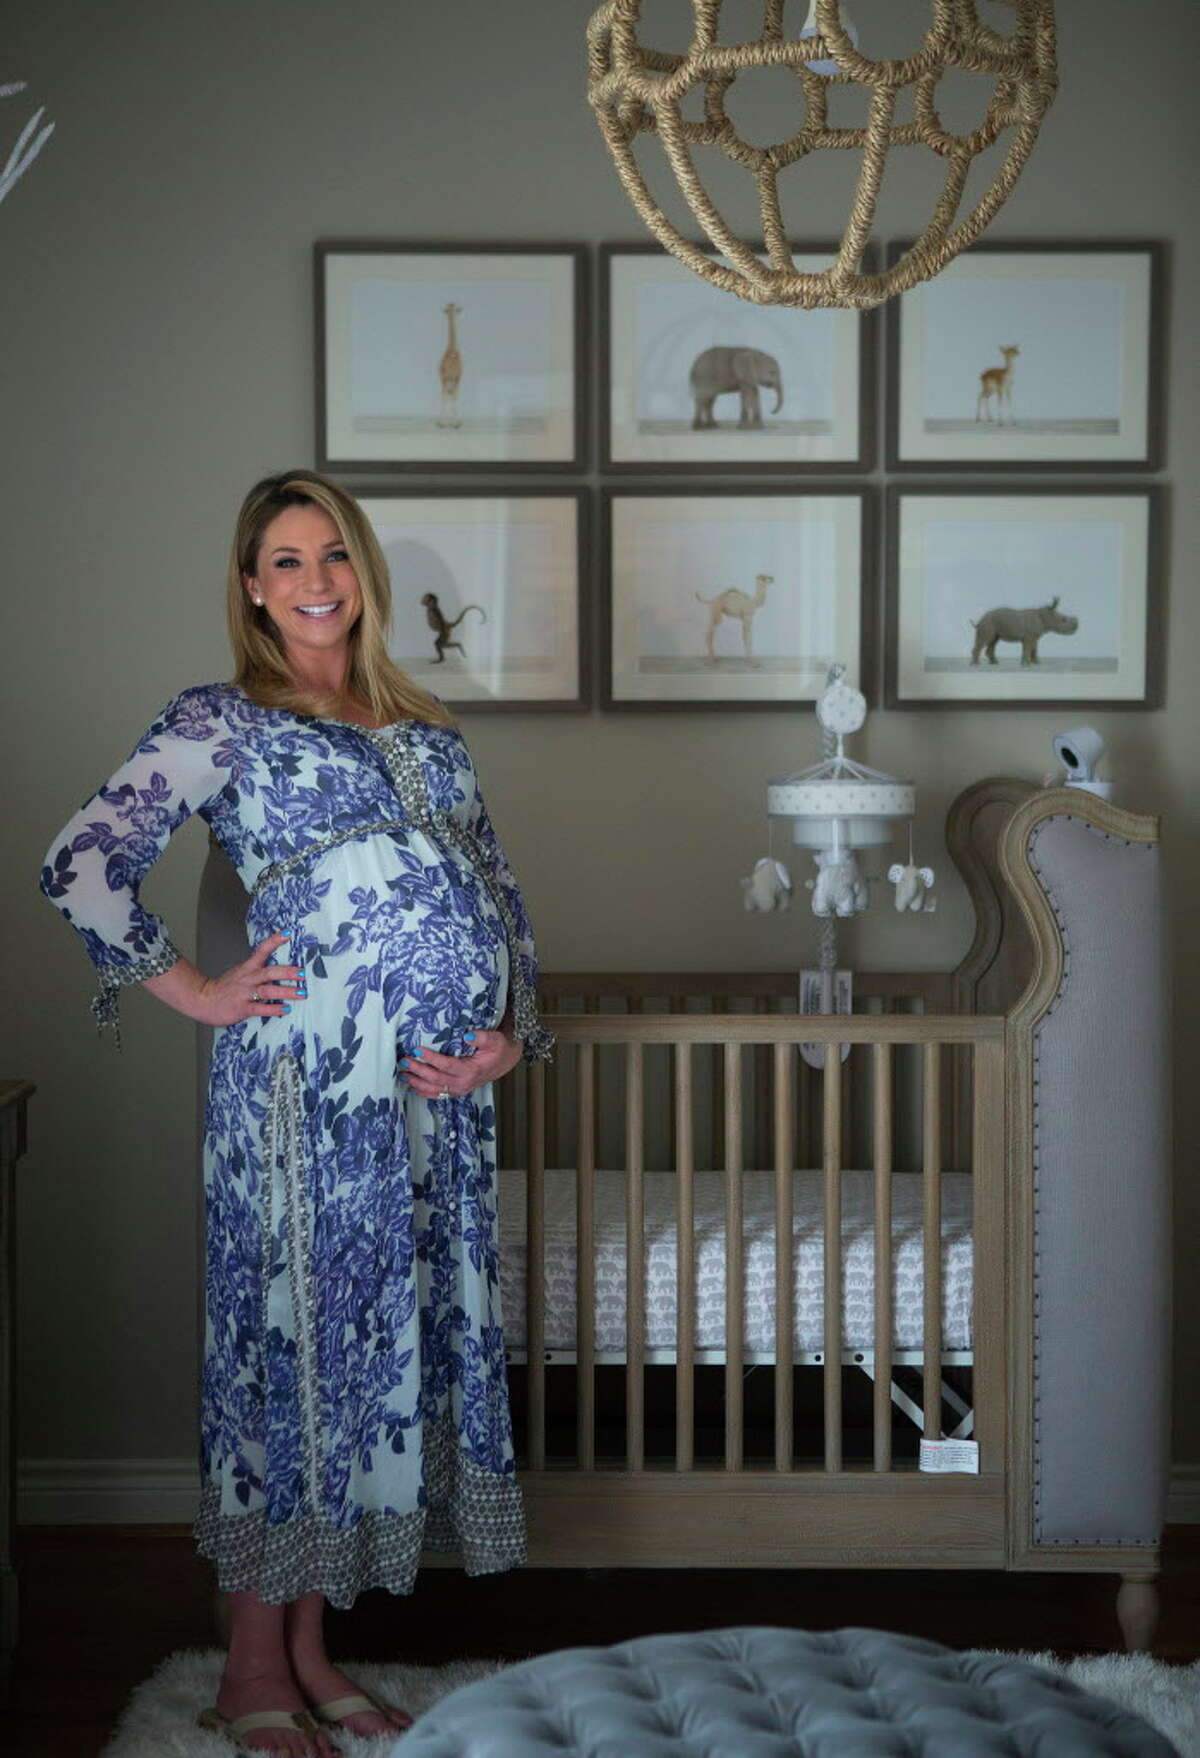 Chita Craft is making final preparations for the birth of her and Lane's son, Les William Craft, inside their Houston home Wednesday, March 1, 2017. Wednesday was the baby's due date.